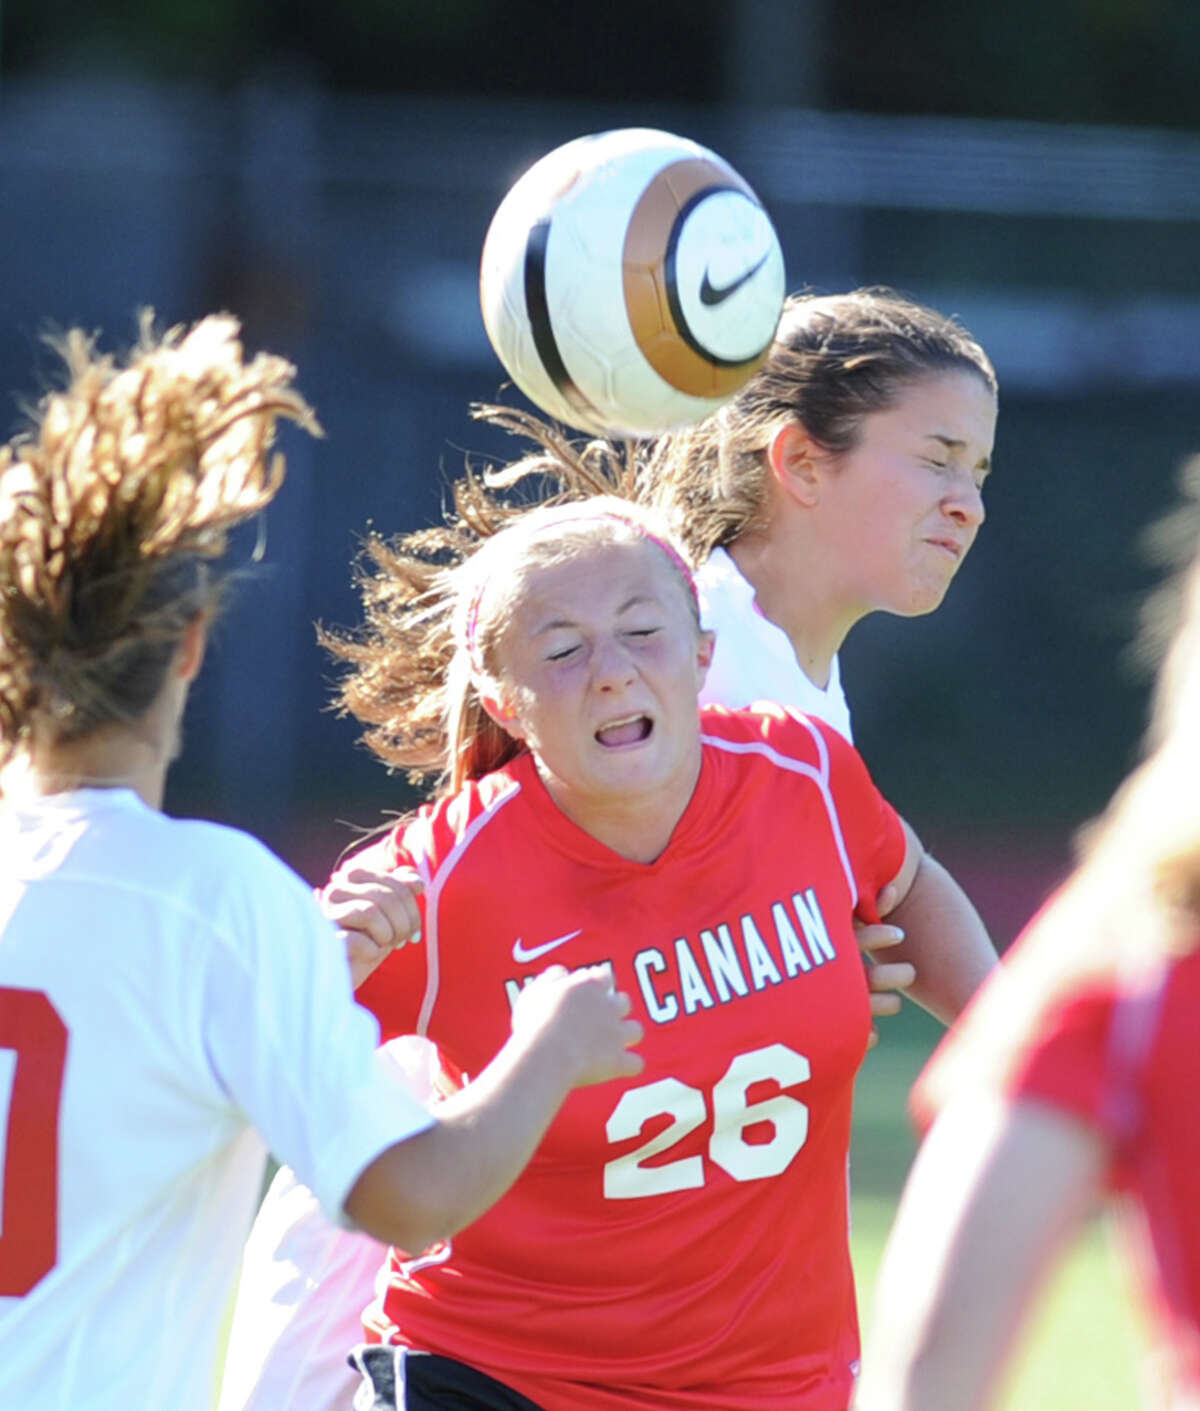 At center, Courtney Overacker (# 26) of New Canaan heads the ball between two Greenwich defenders during the girls varsity soccer match between Greenwich High School and New Canaan High School at Greenwich, Tuesday, Sept. 17, 2013. New Canaan defeated Greenwich, 2-1.